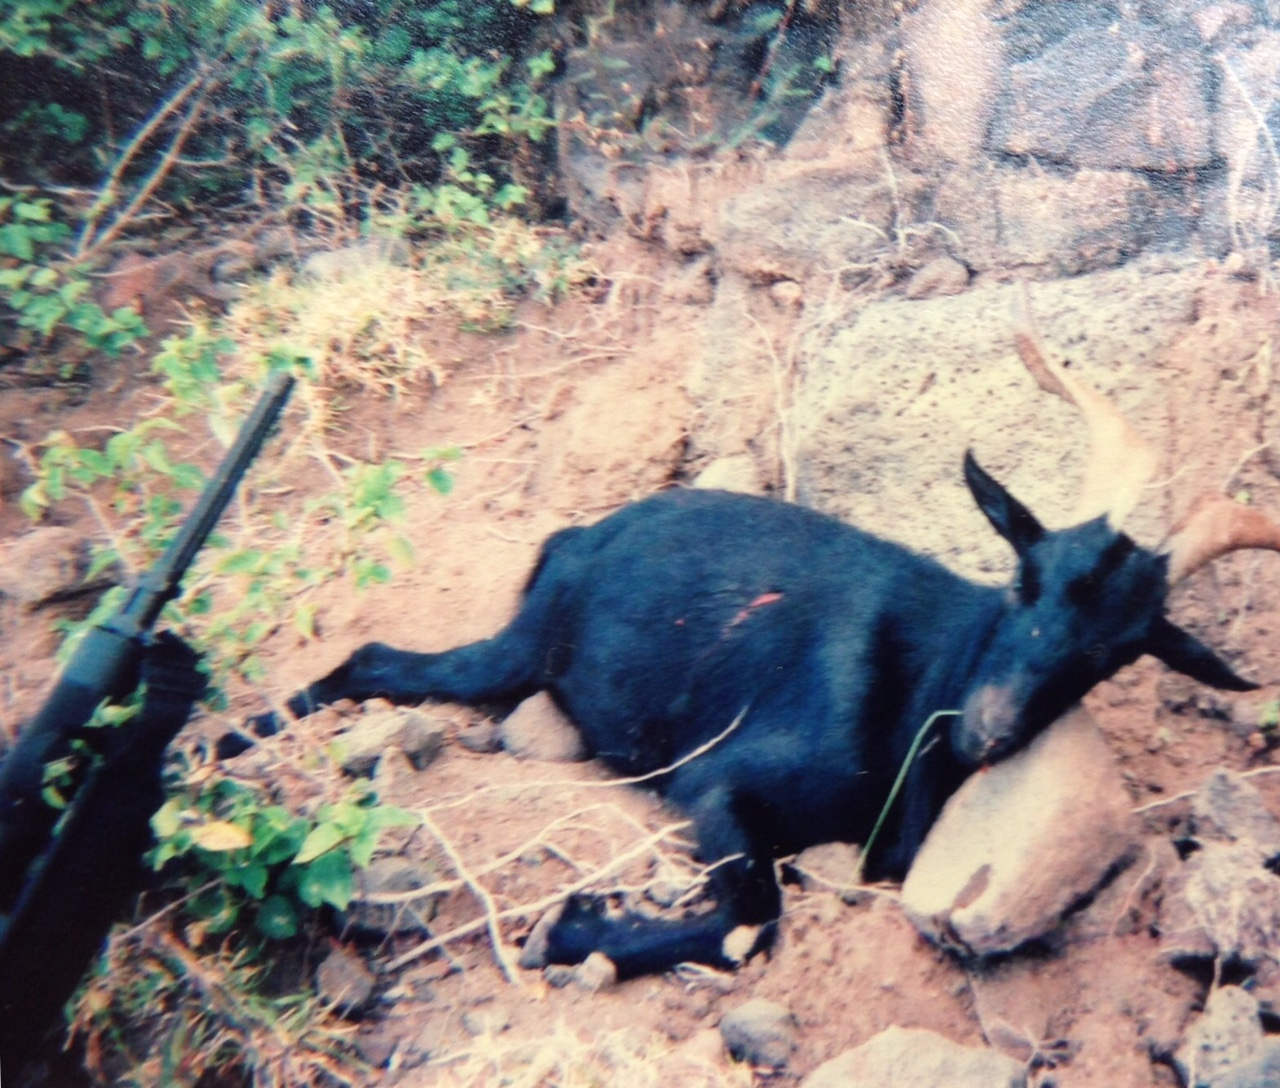 A goat killed in 2003 in the mountains on Kauai, the fourth largest Hawaiian island, with an AR-15.